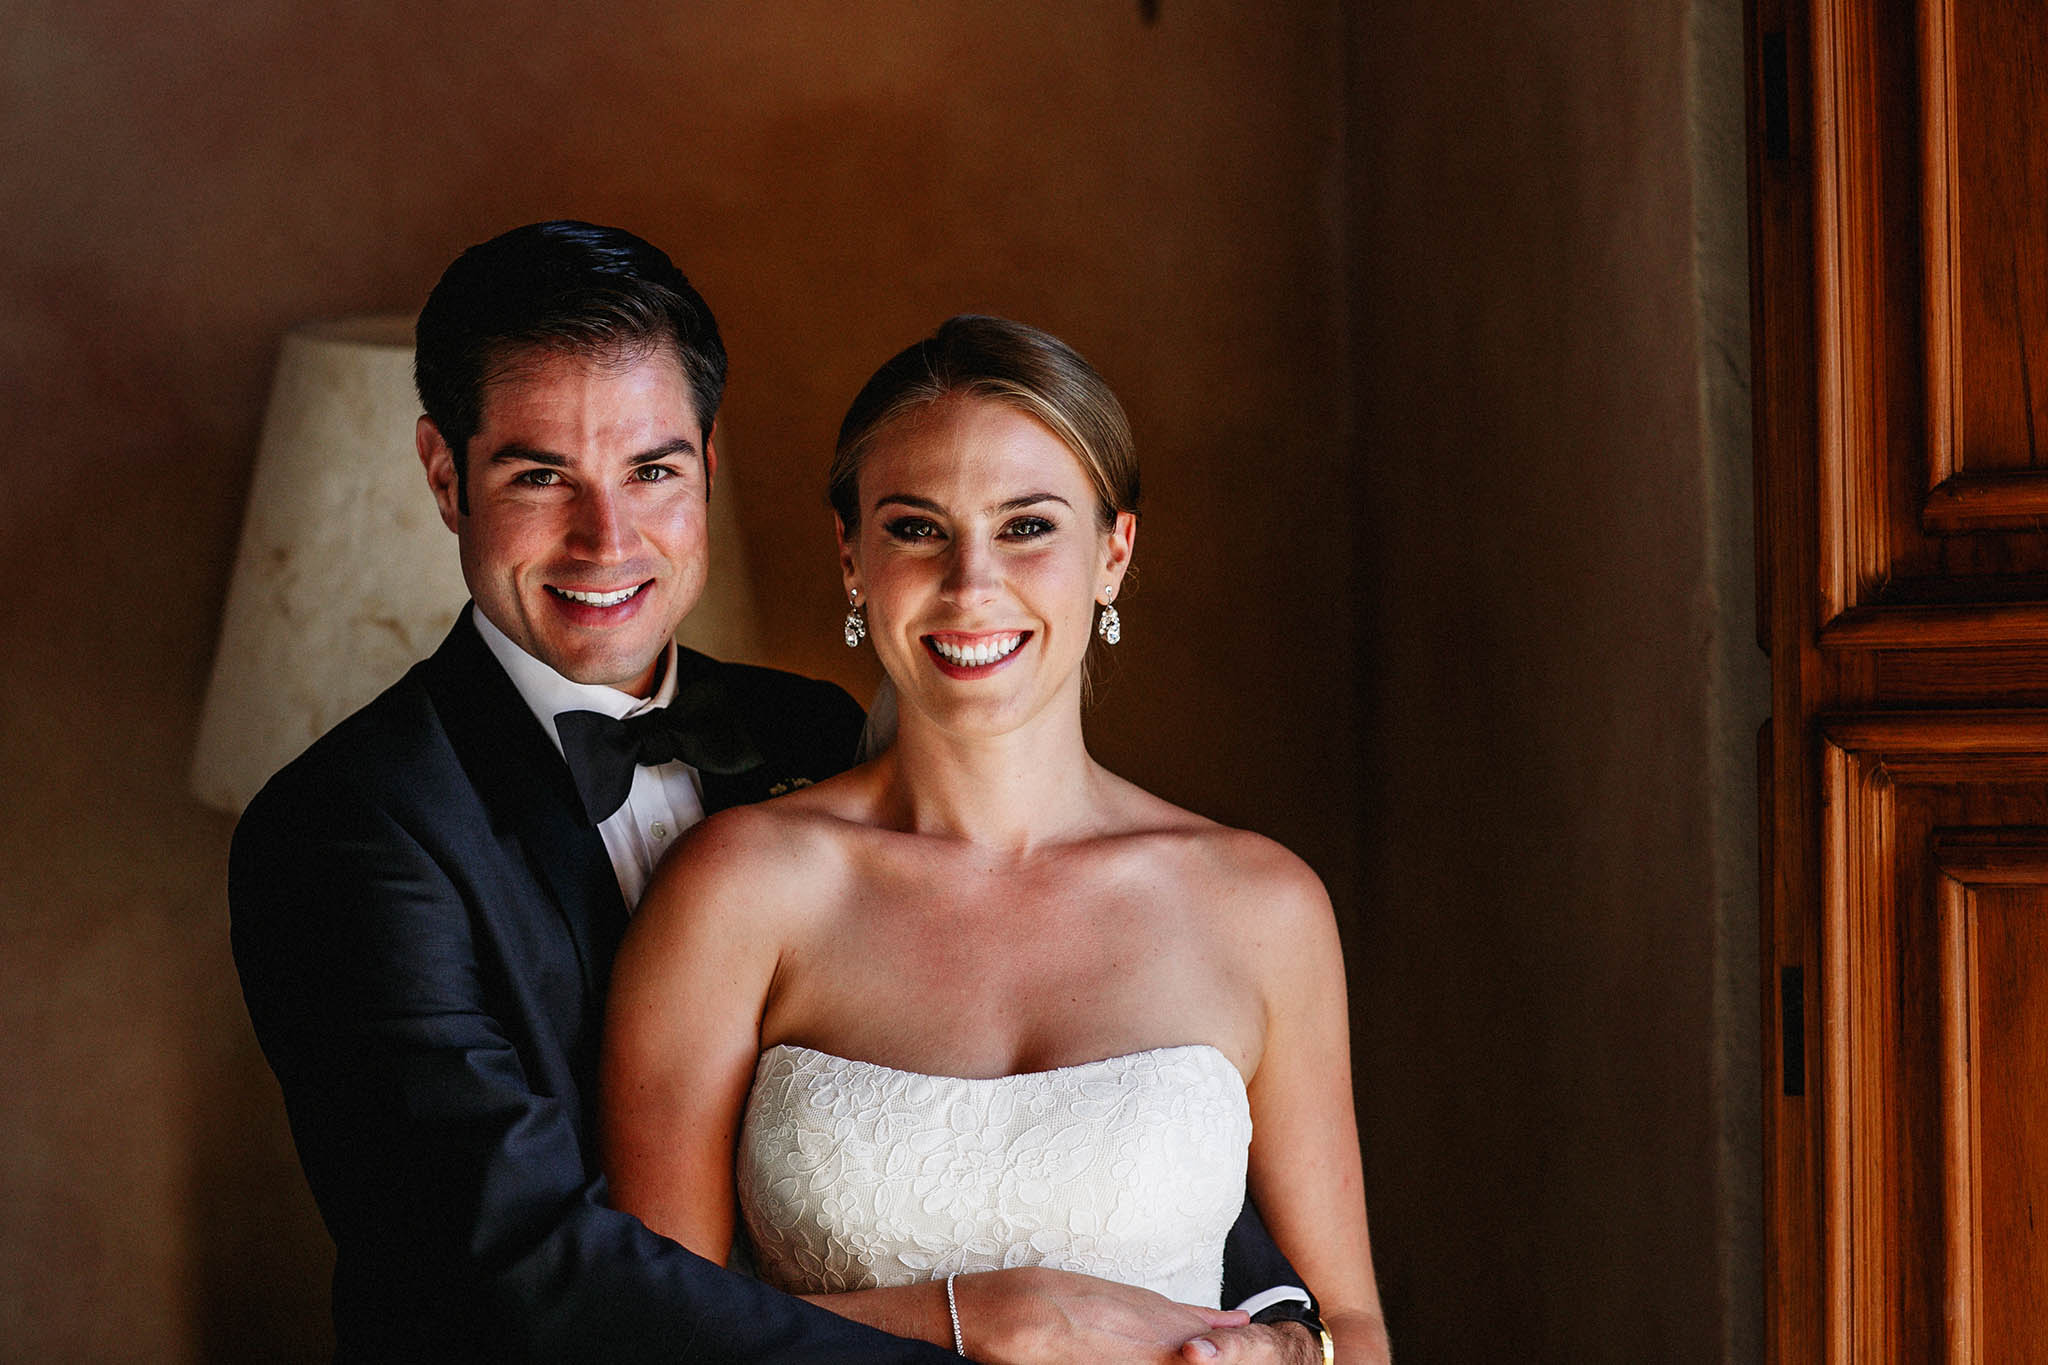 San-miguel-de-allende-wedding54